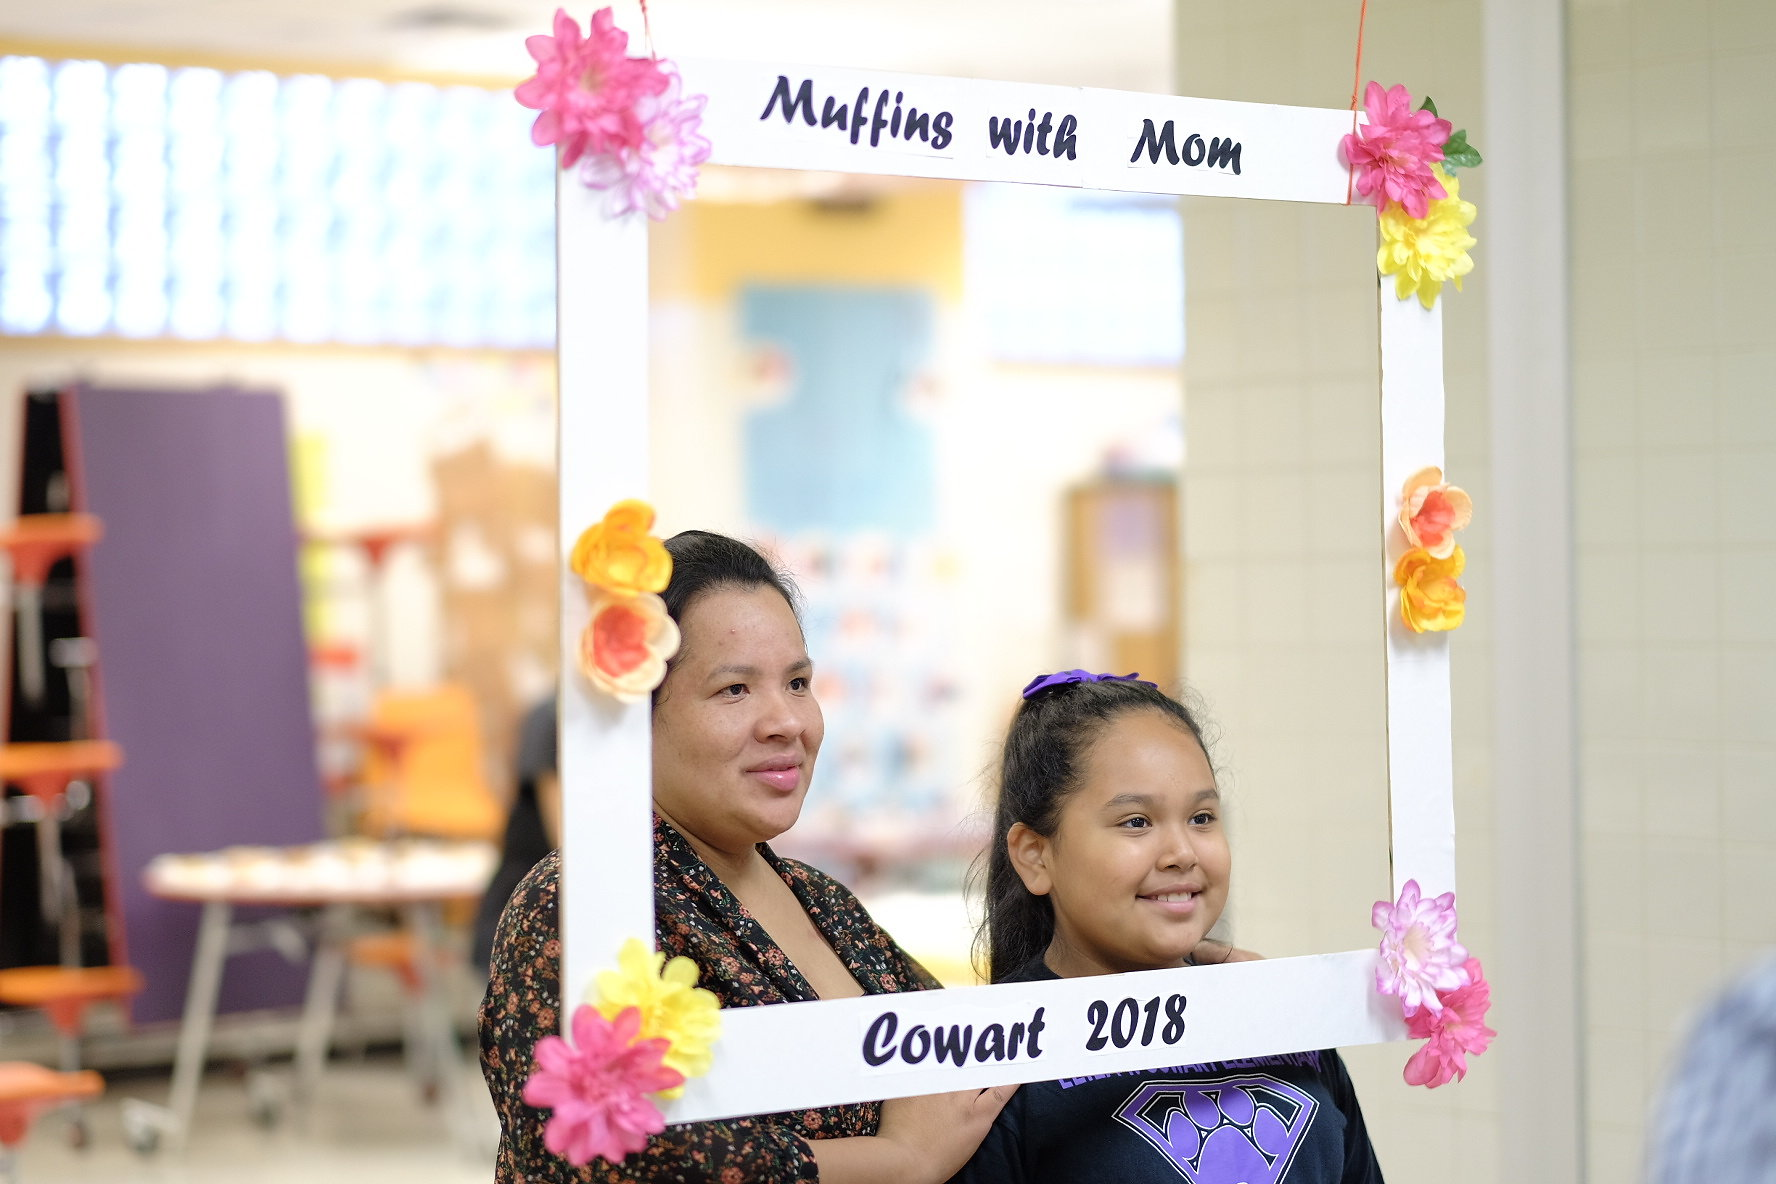 Muffins with Mom at Cowart Elementary